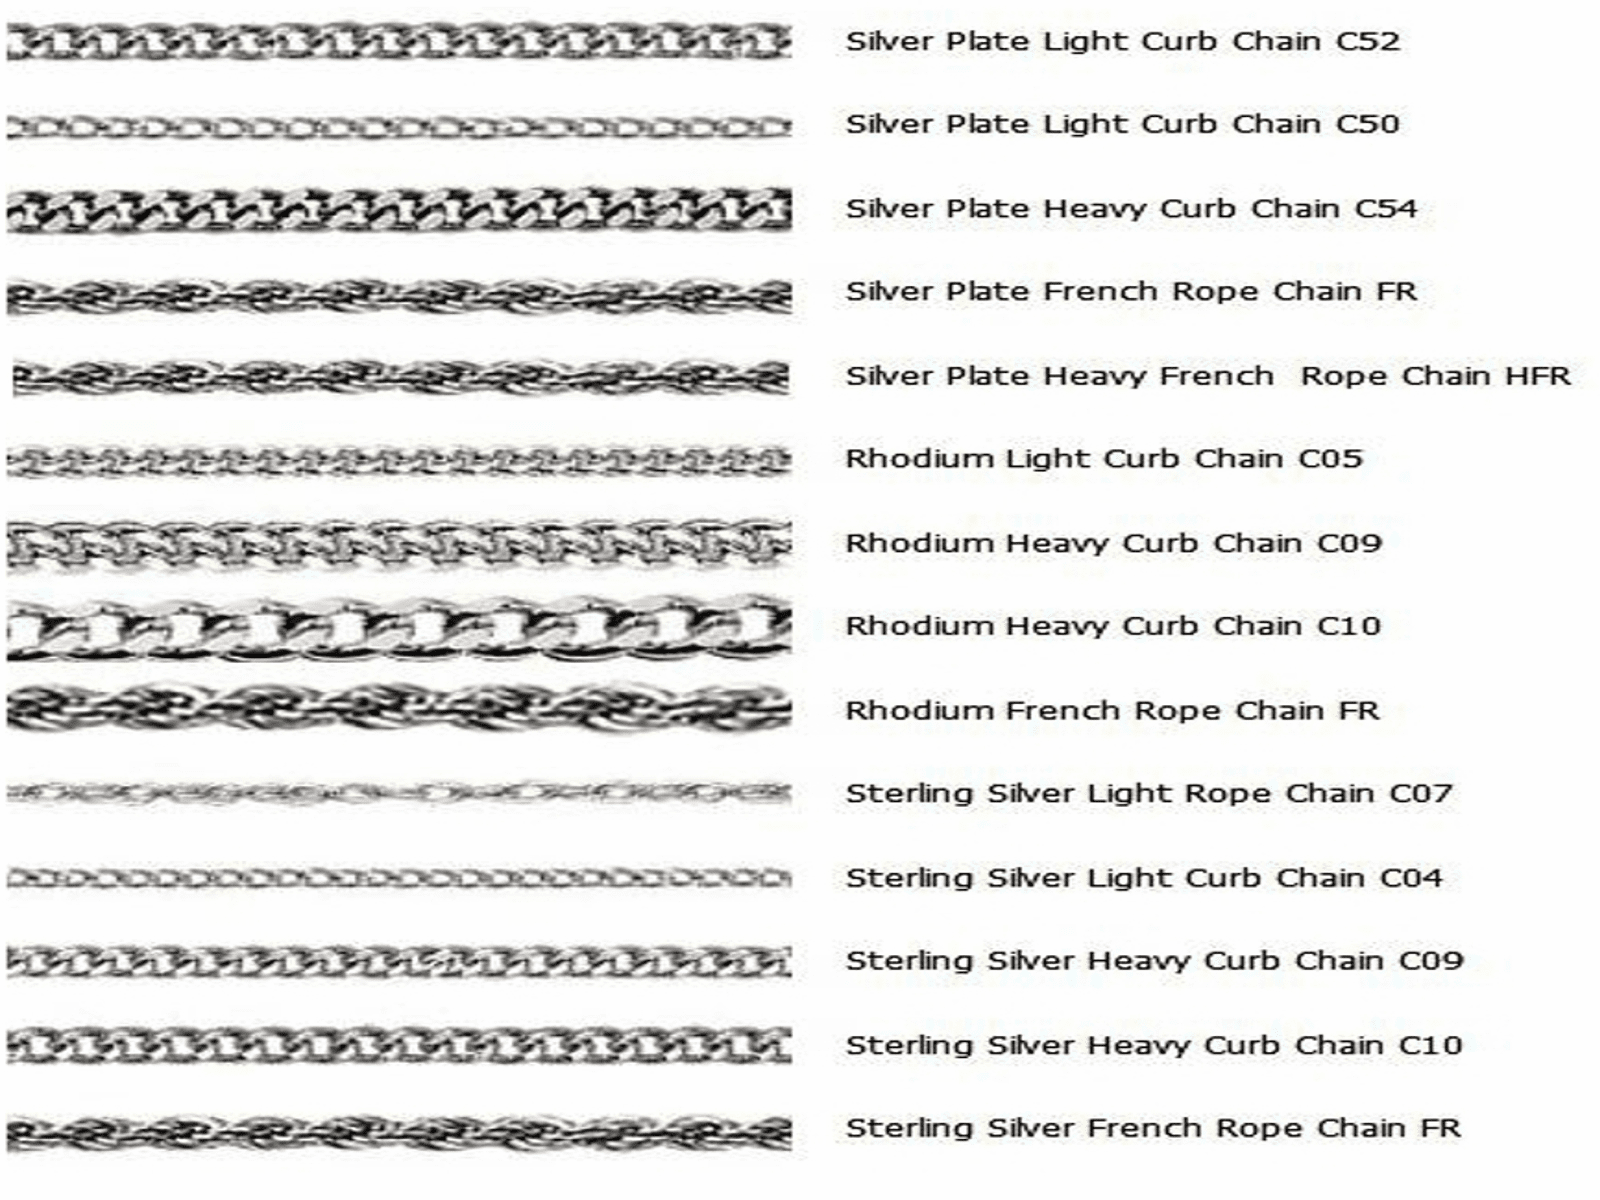 Bliss Sterling Silver Chain Options